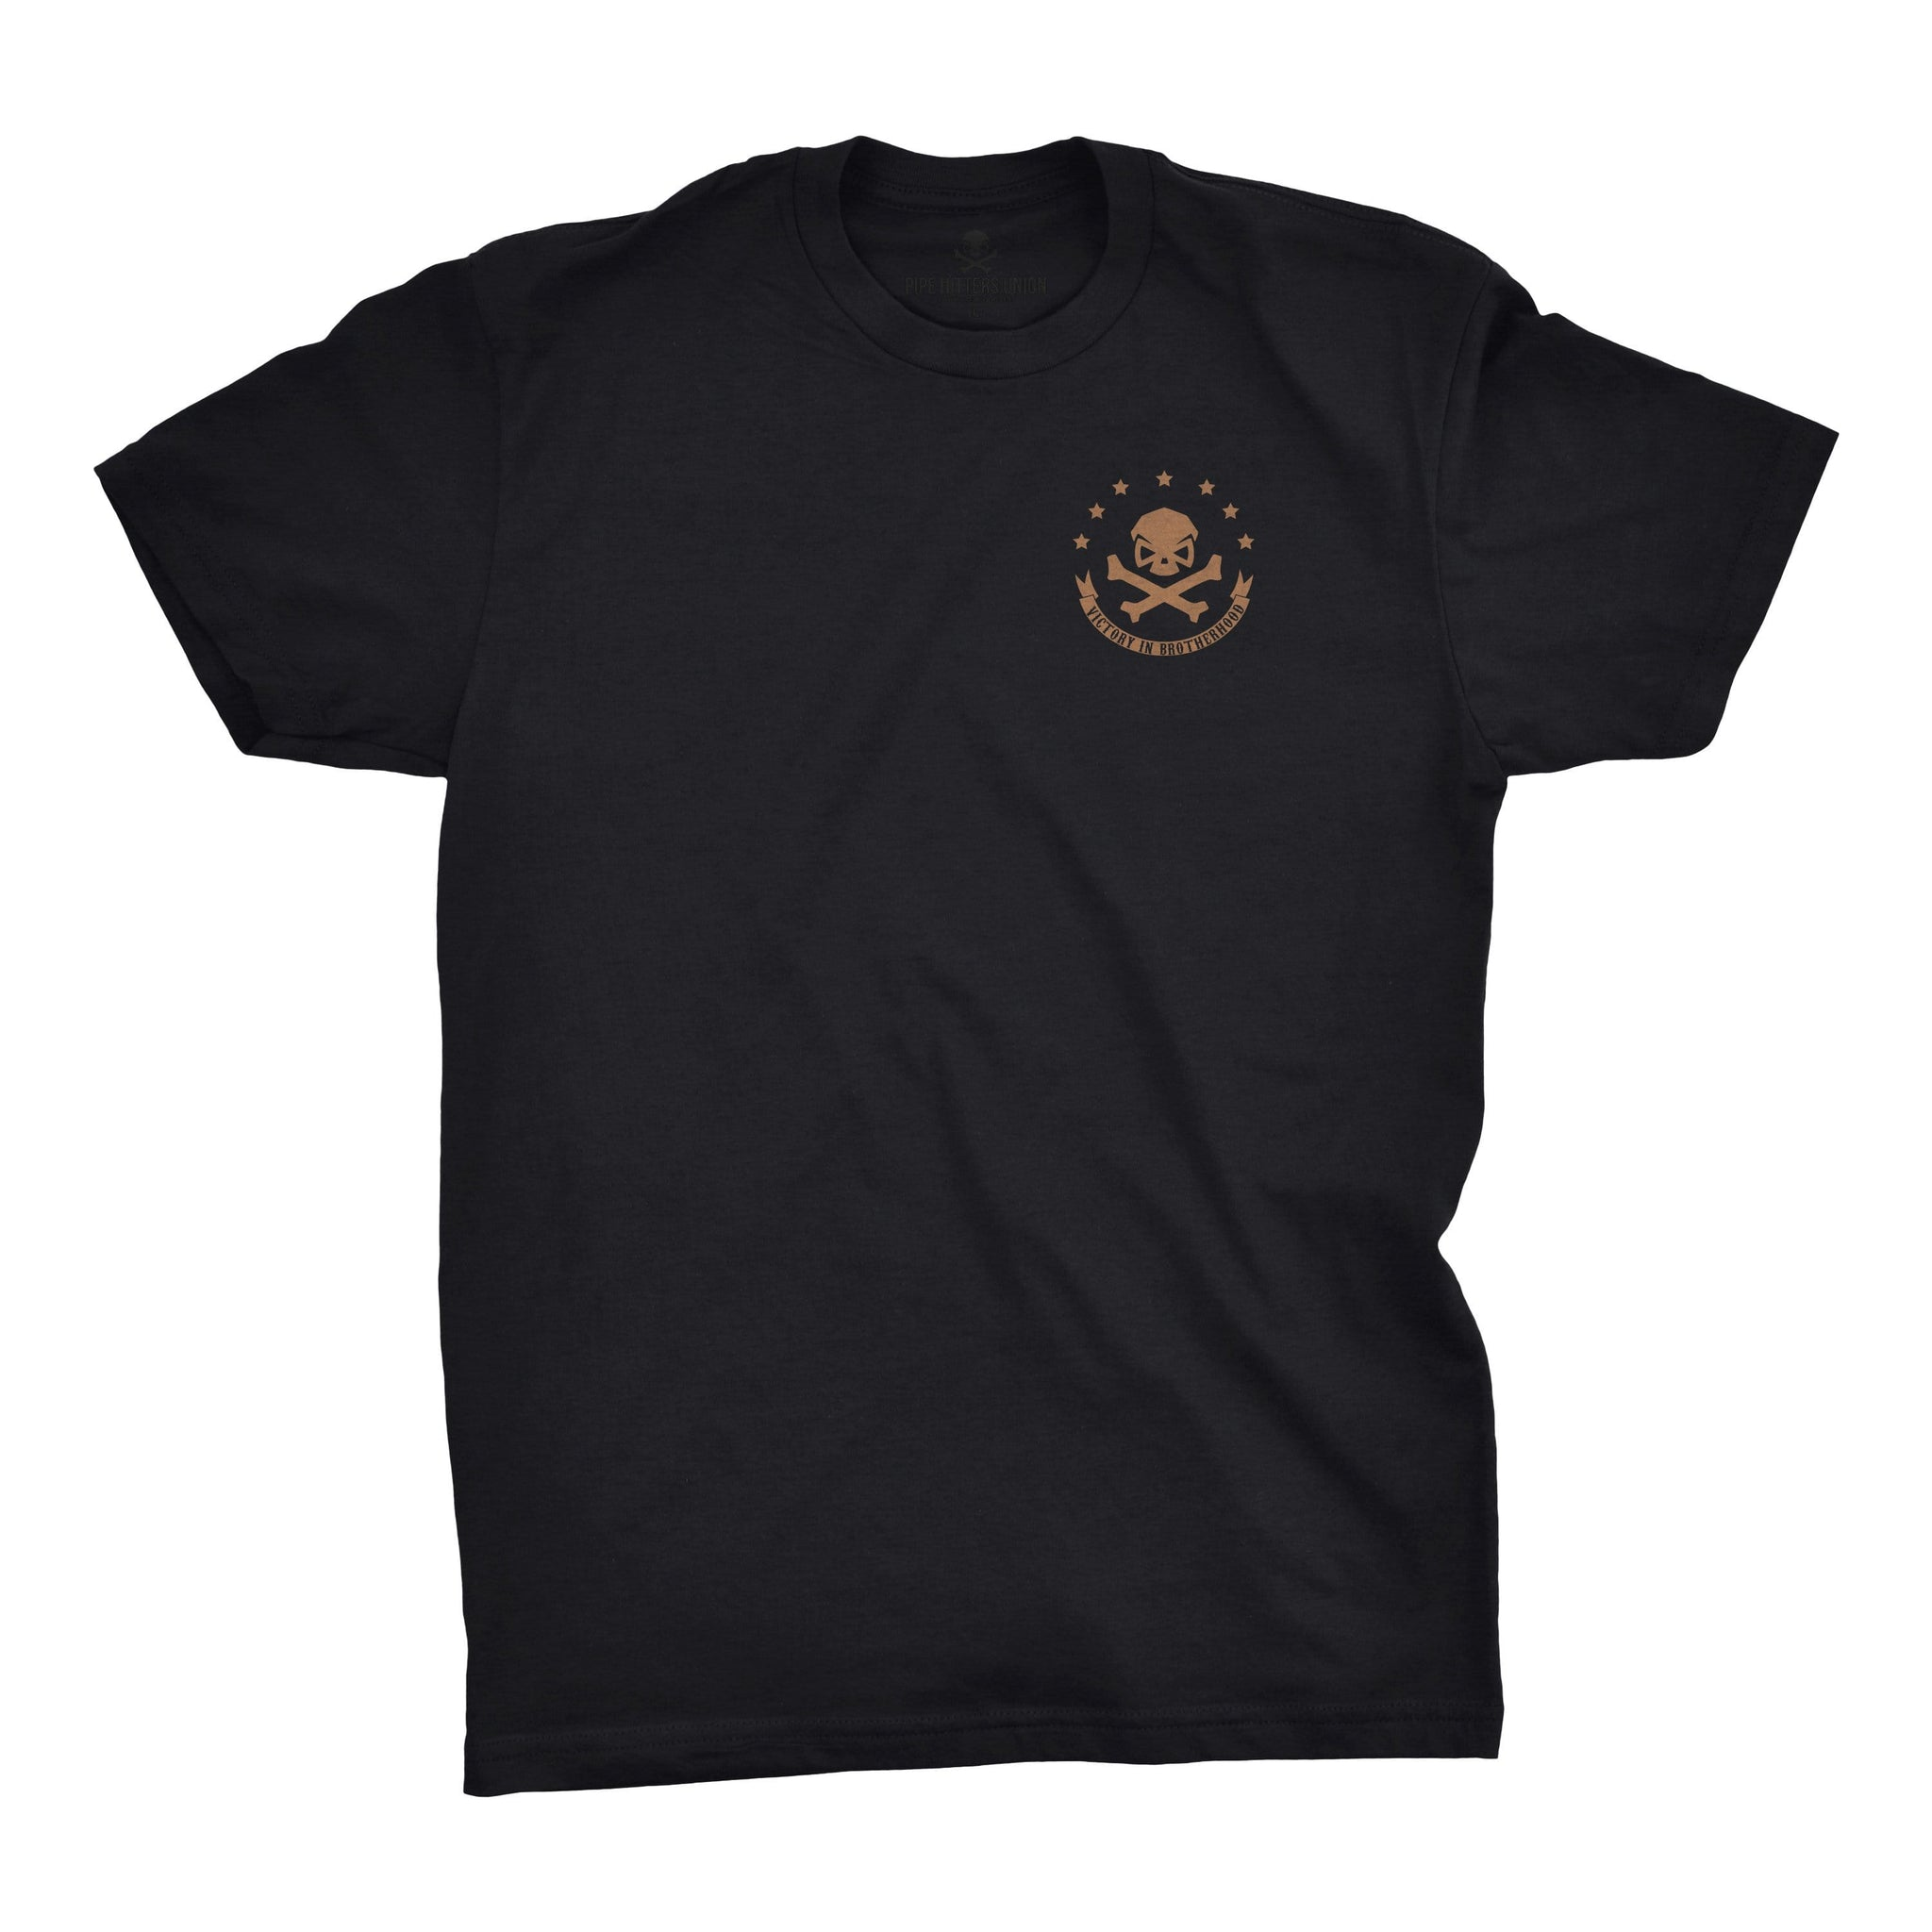 PHUMC Ghost Riders Chapter Tee - Black - T-Shirts - Pipe Hitters Union